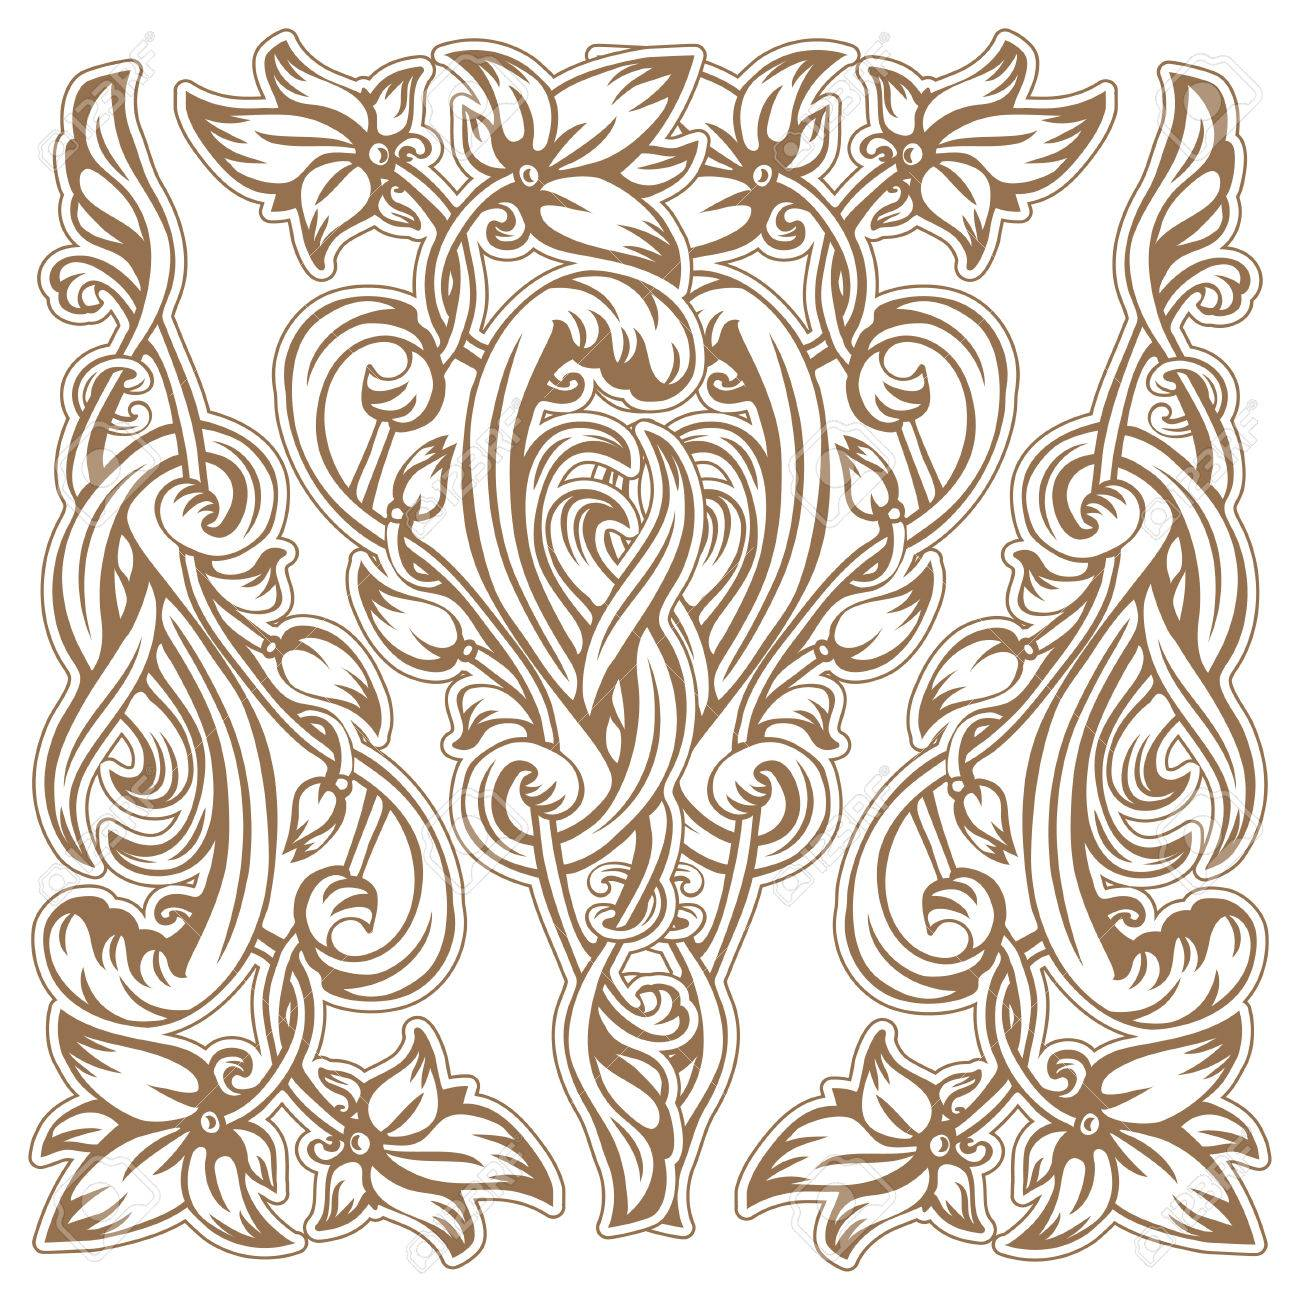 vector vintage pattern of flowers and leaves in the art nouveau